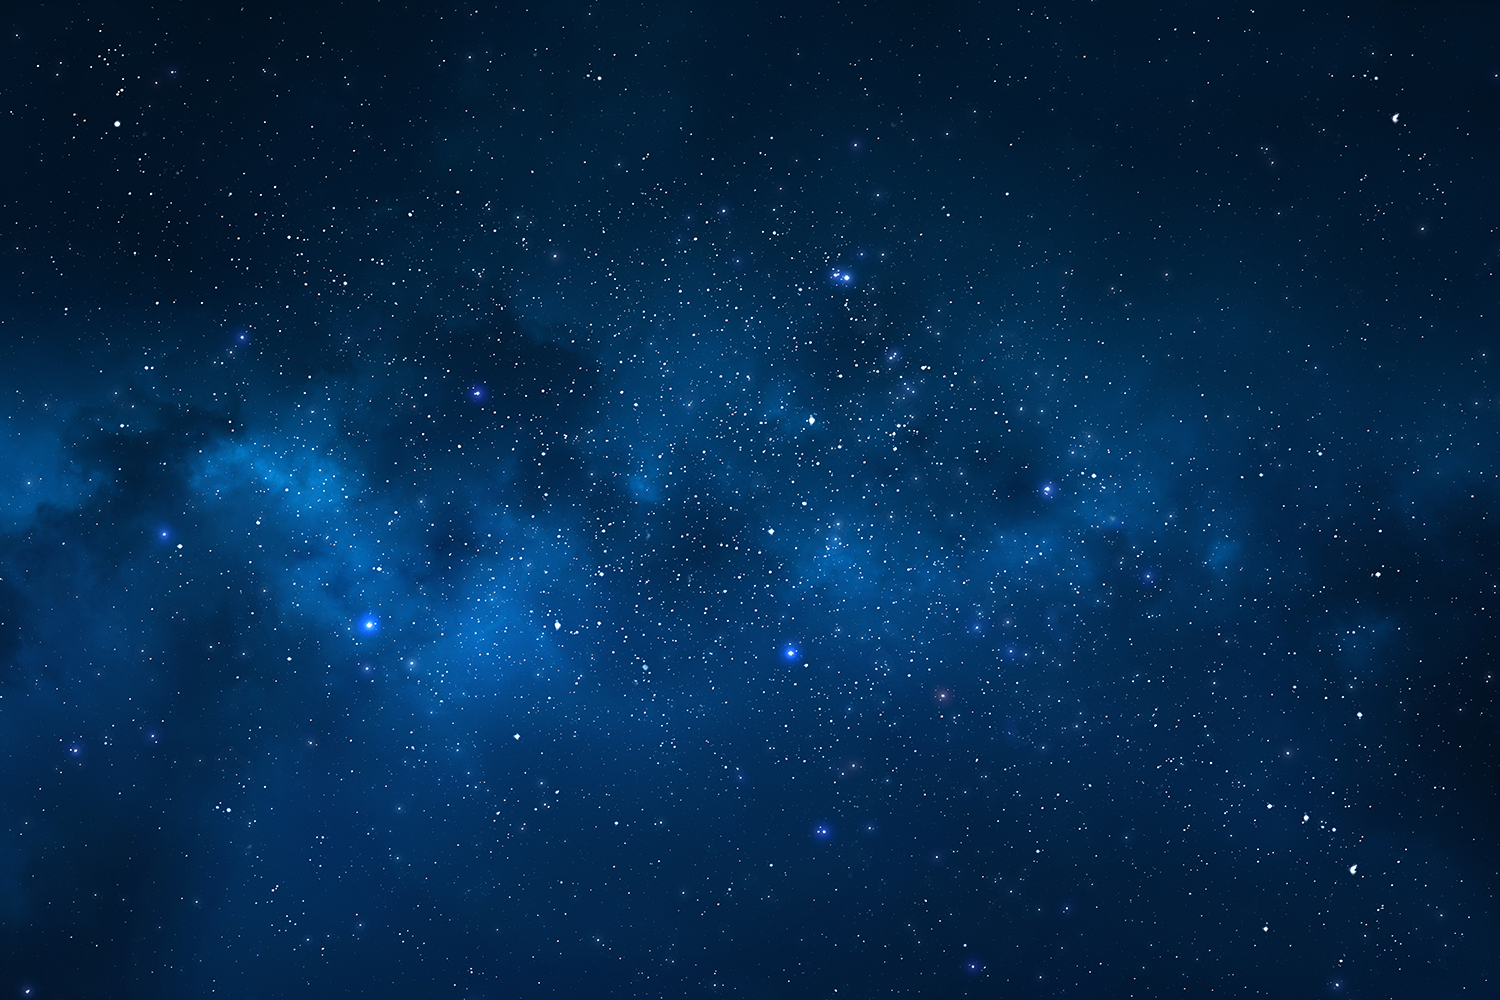 Space HD PNG - 120271